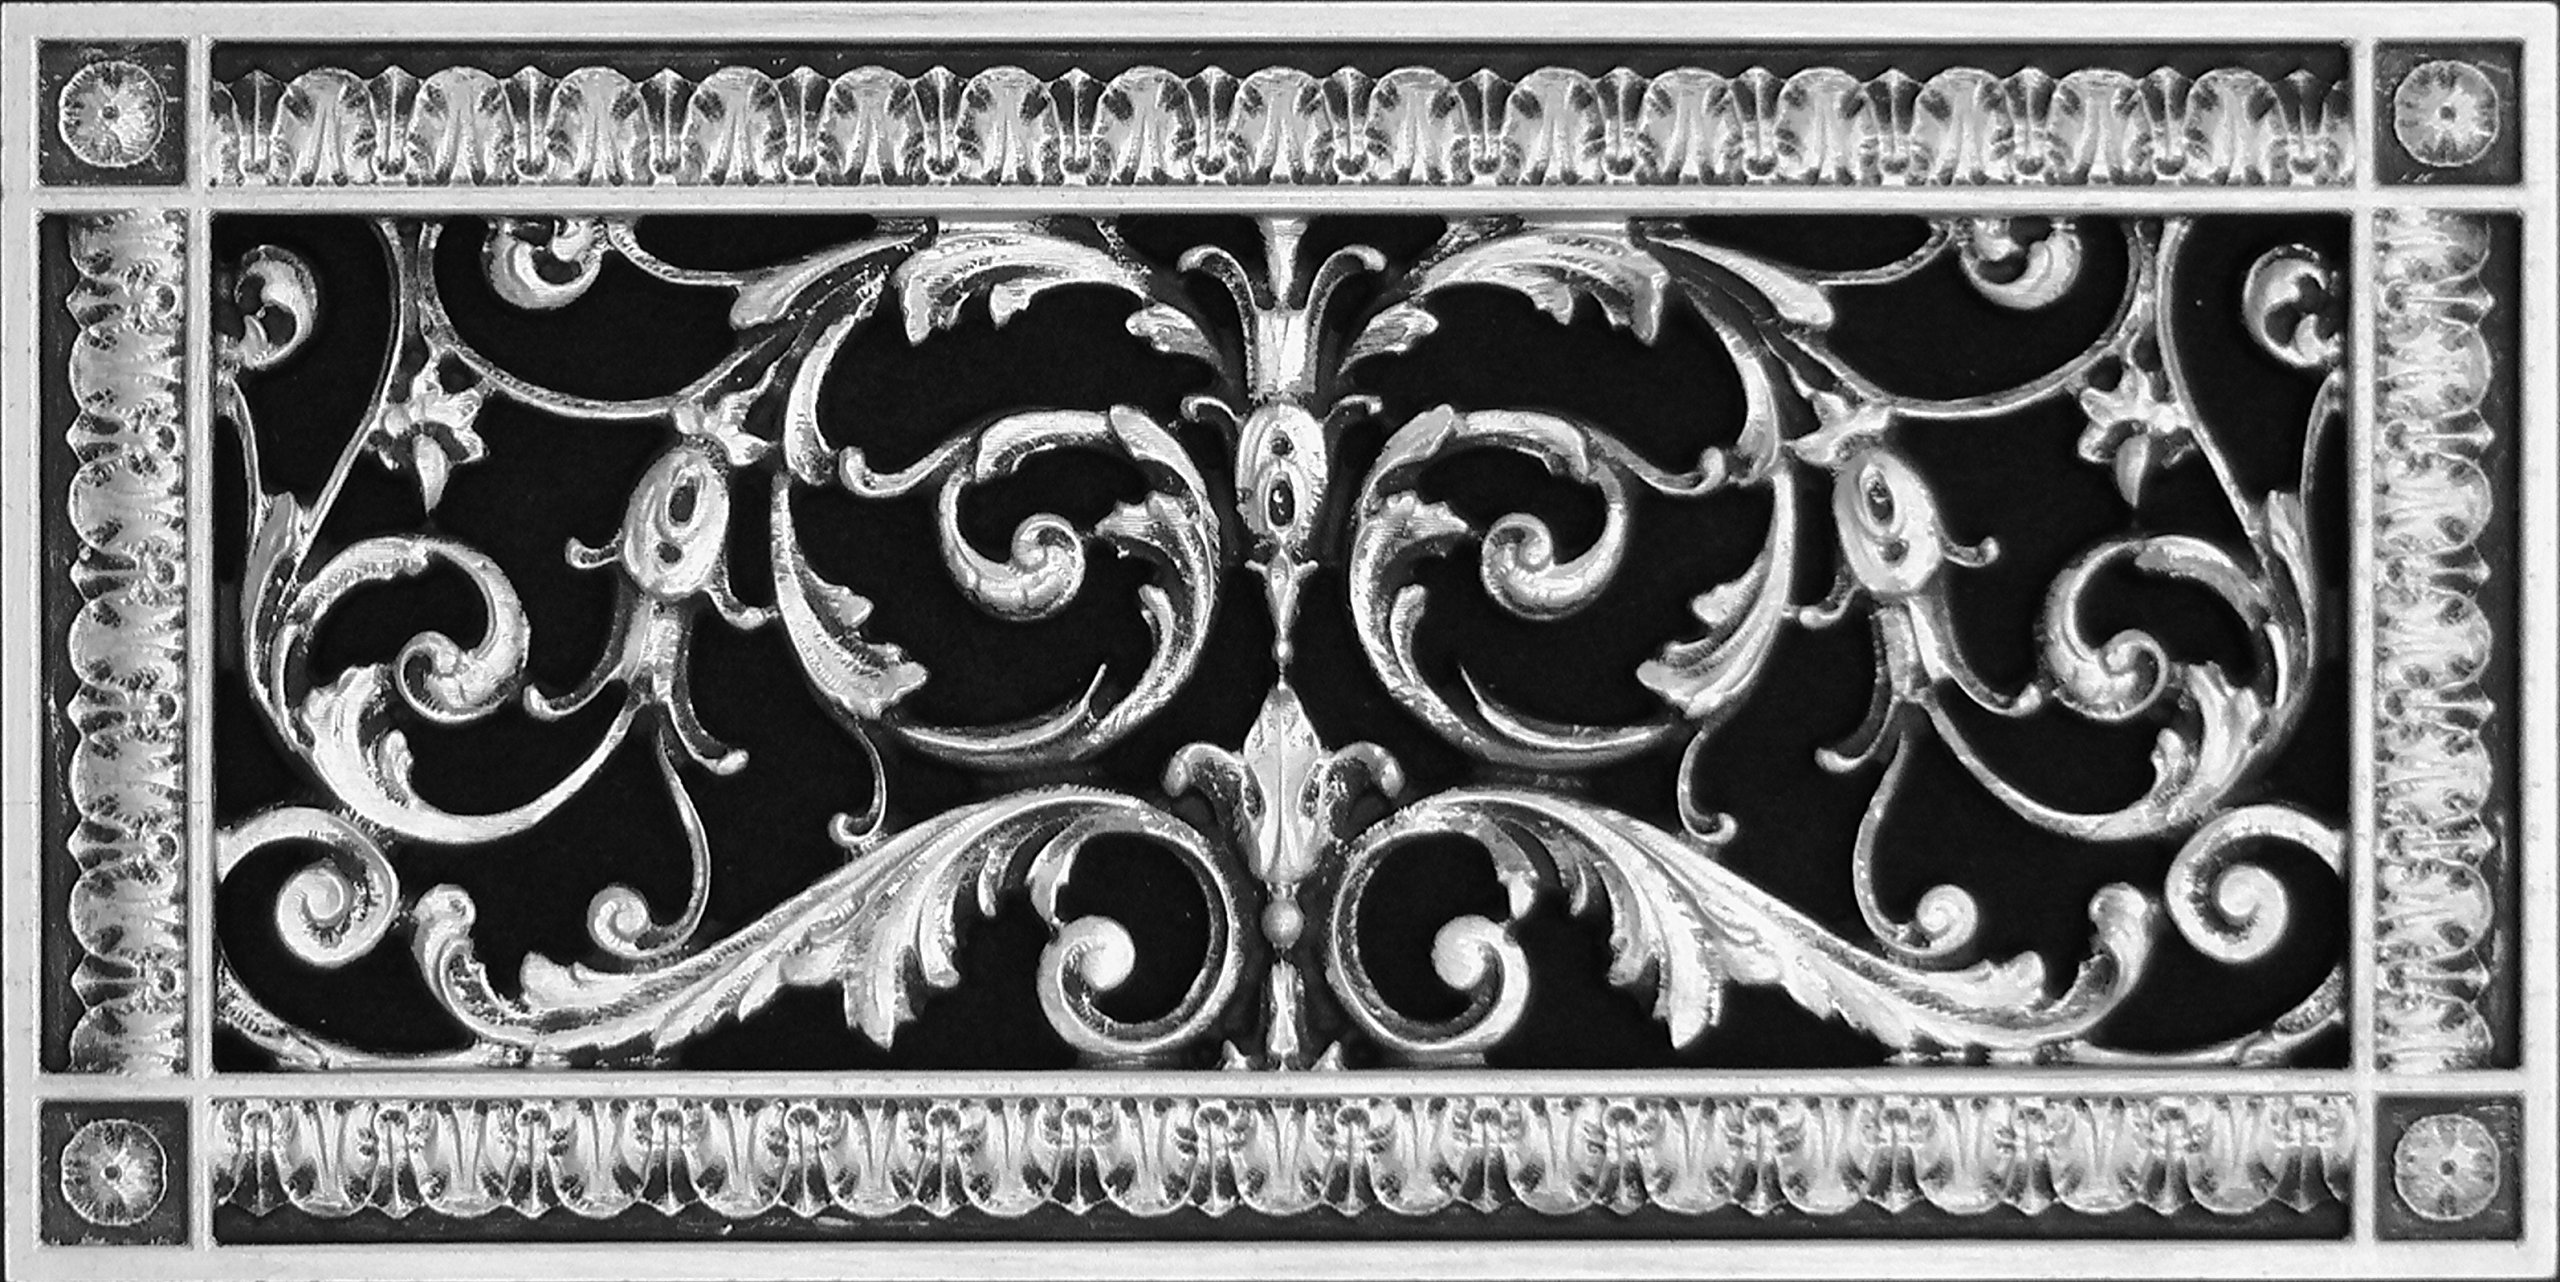 "Decorative Vent Cover, Grille, made of Urethane Resin in Louis XIV, French style fits over a 6"" x 14"", Total size, 8"" by 16"", for wall & ceiling installation only. (not for floors) (Nickel)"